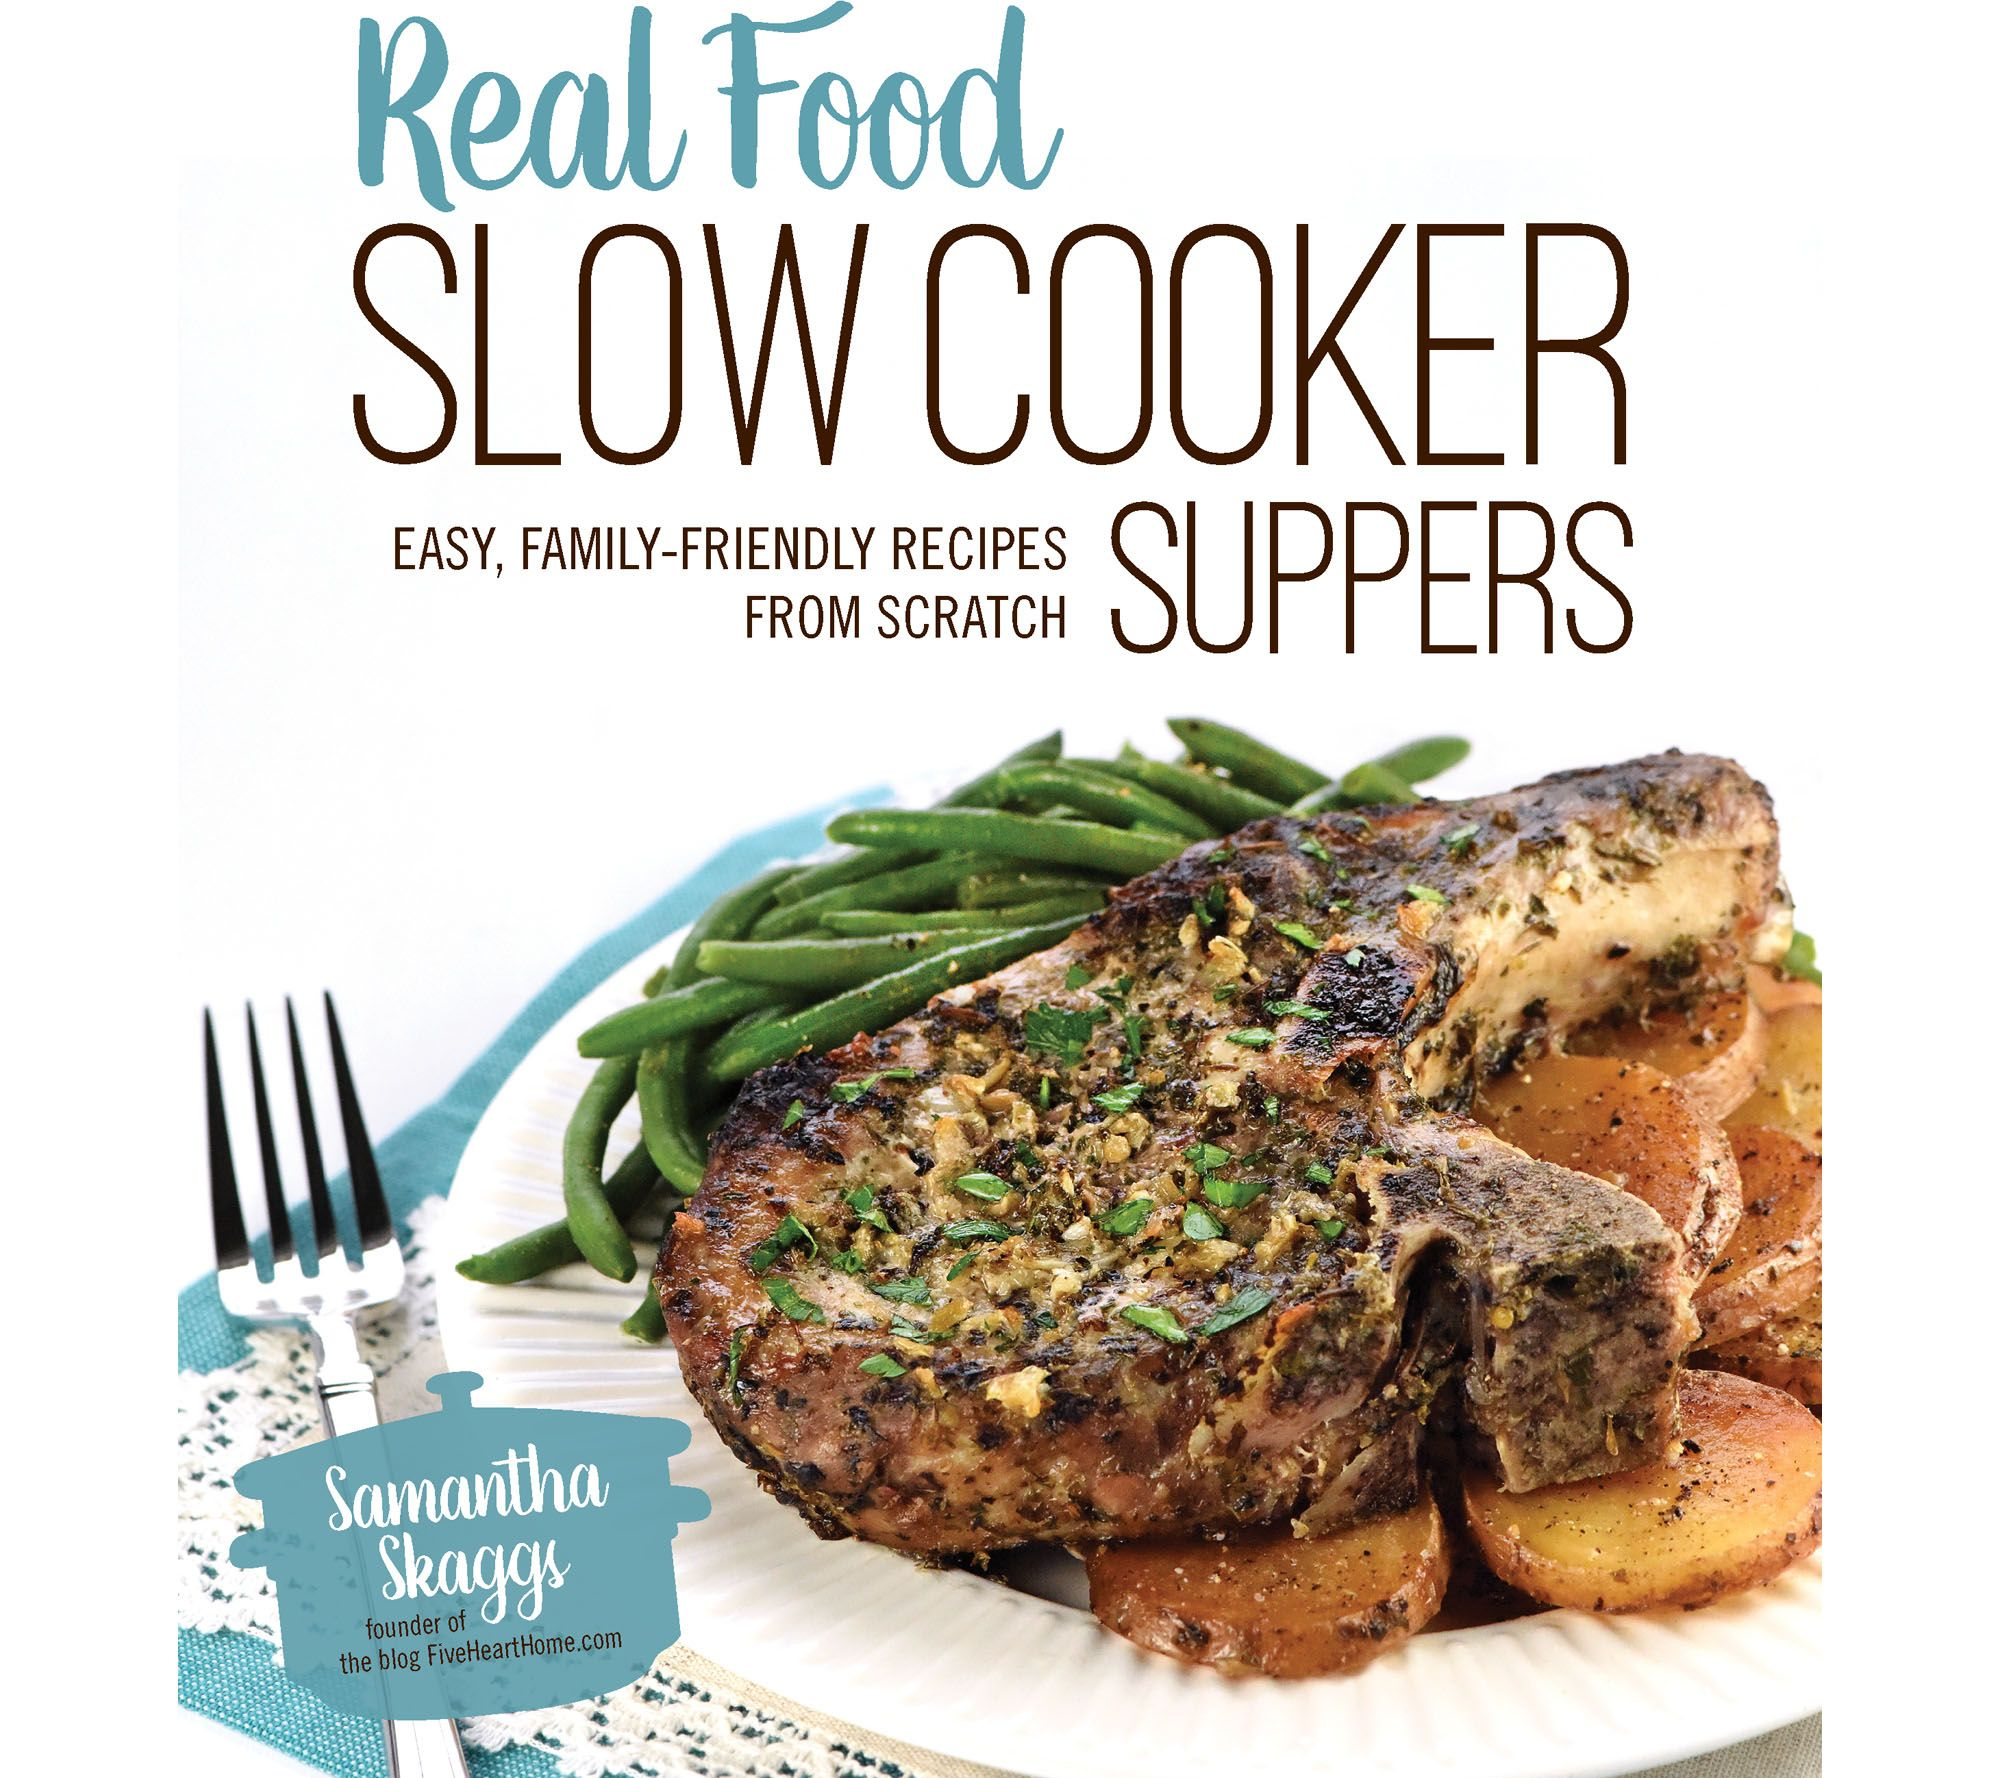 Real food slow cooker suppers cookbook by samantha skaggs page 1 real food slow cooker suppers cookbook by samantha skaggs page 1 qvc forumfinder Choice Image